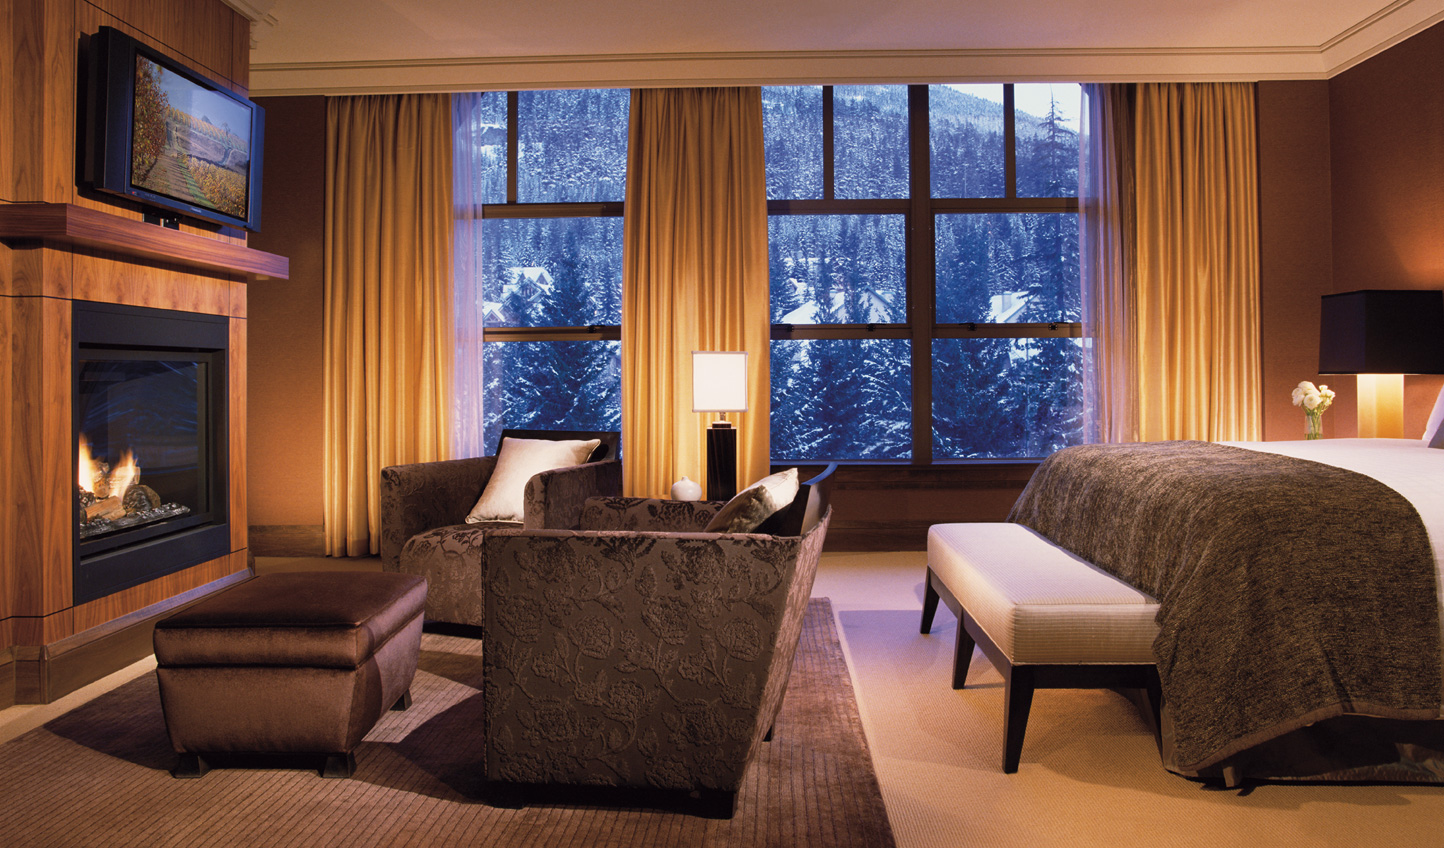 Cosy up in front of the fire and watch the snow drift down